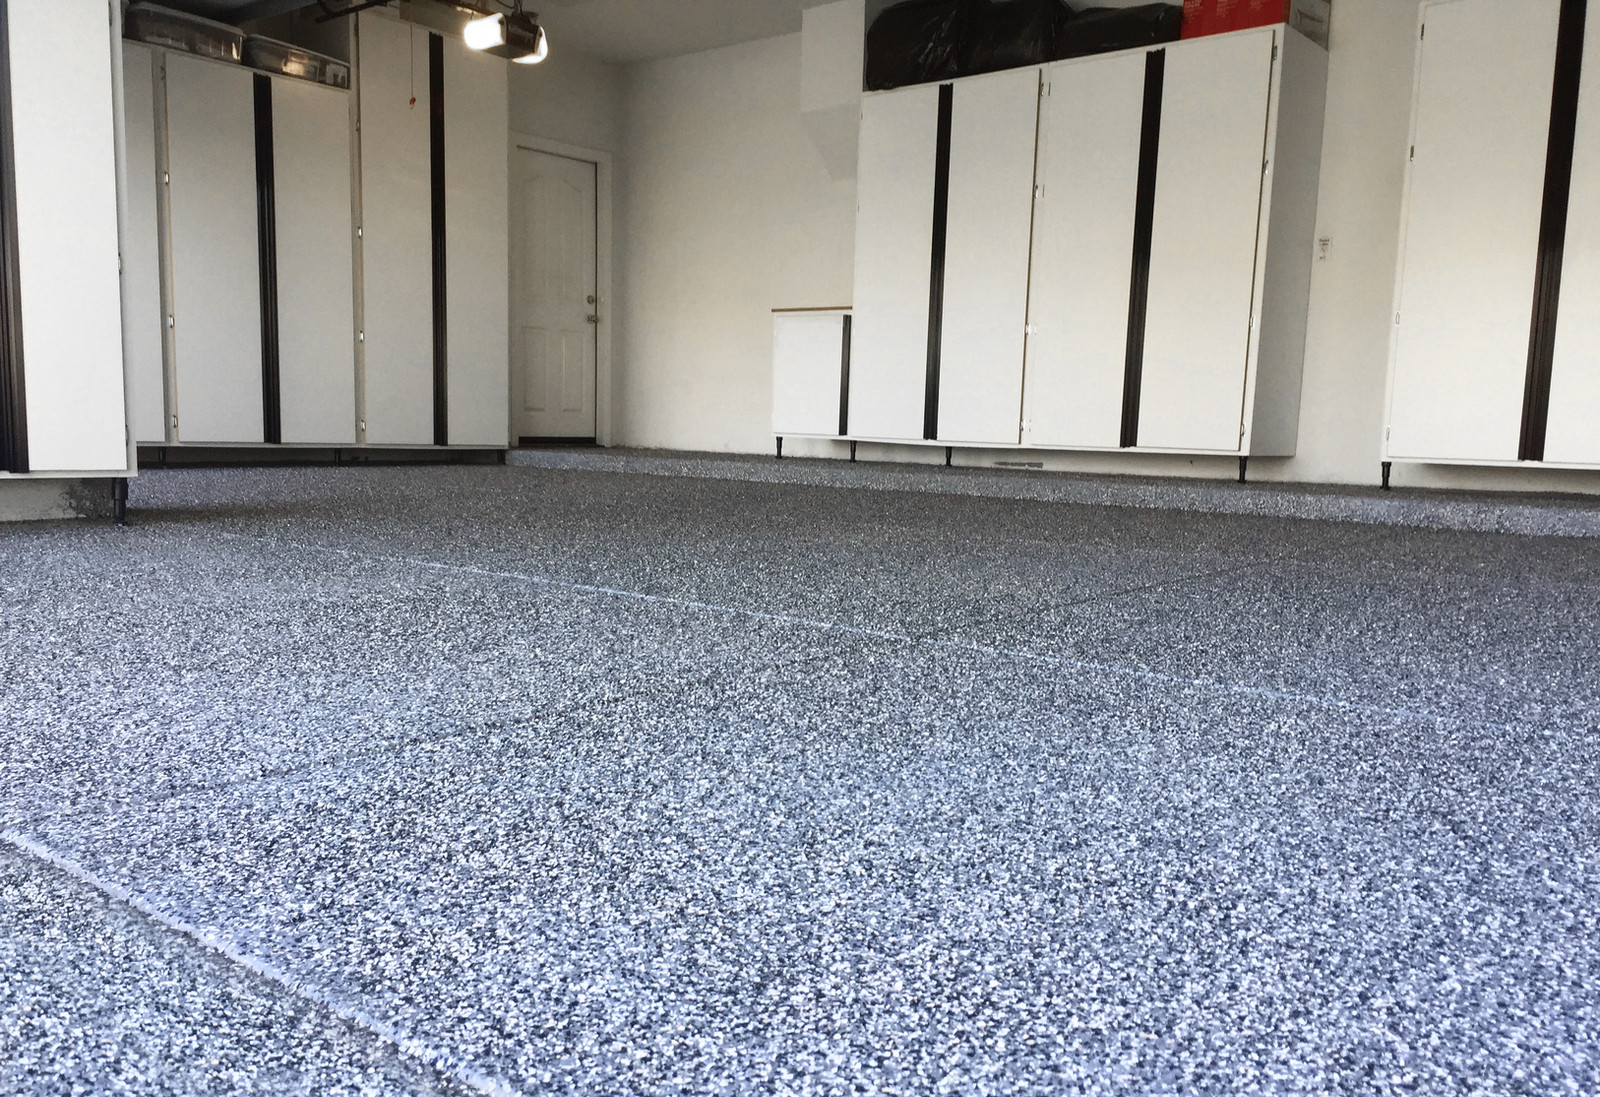 Garage Floor Paint Chips Paint Chip Garage Floor Epoxy Coating